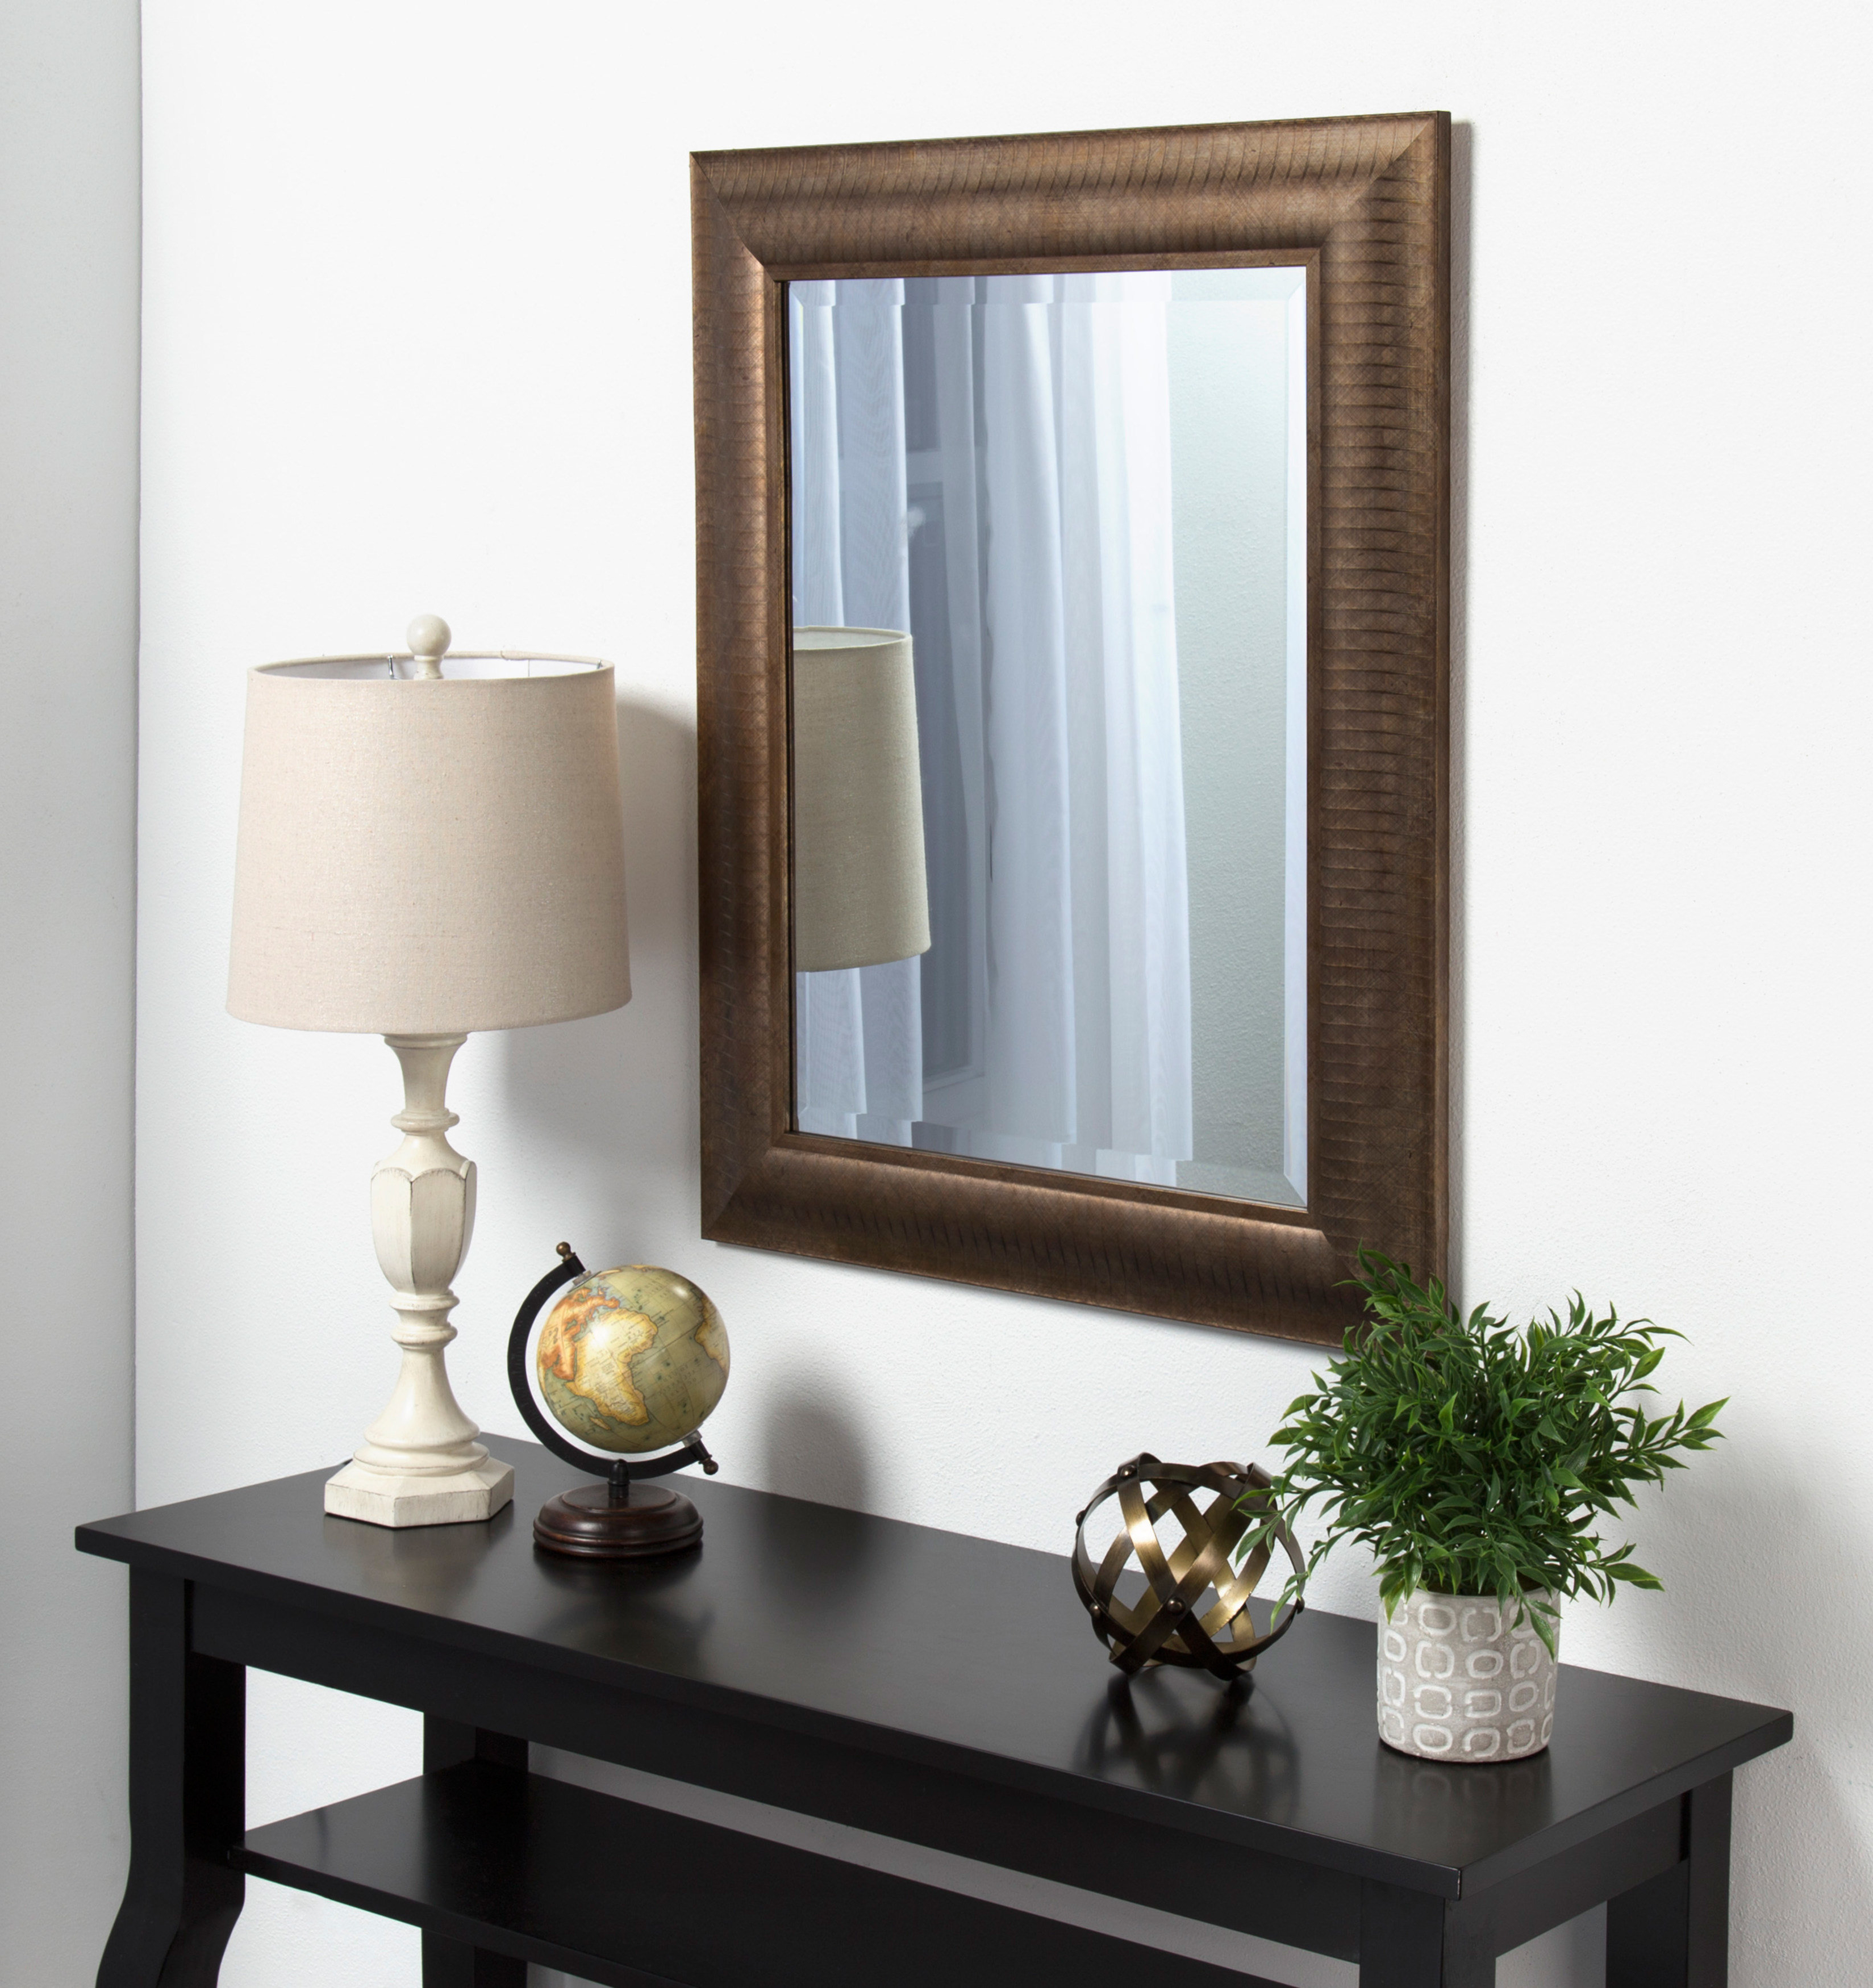 Tora Traditional Beveled Accent Mirror Throughout Widely Used Gaunts Earthcott Modern & Contemporary Beveled Accent Mirrors (View 9 of 20)